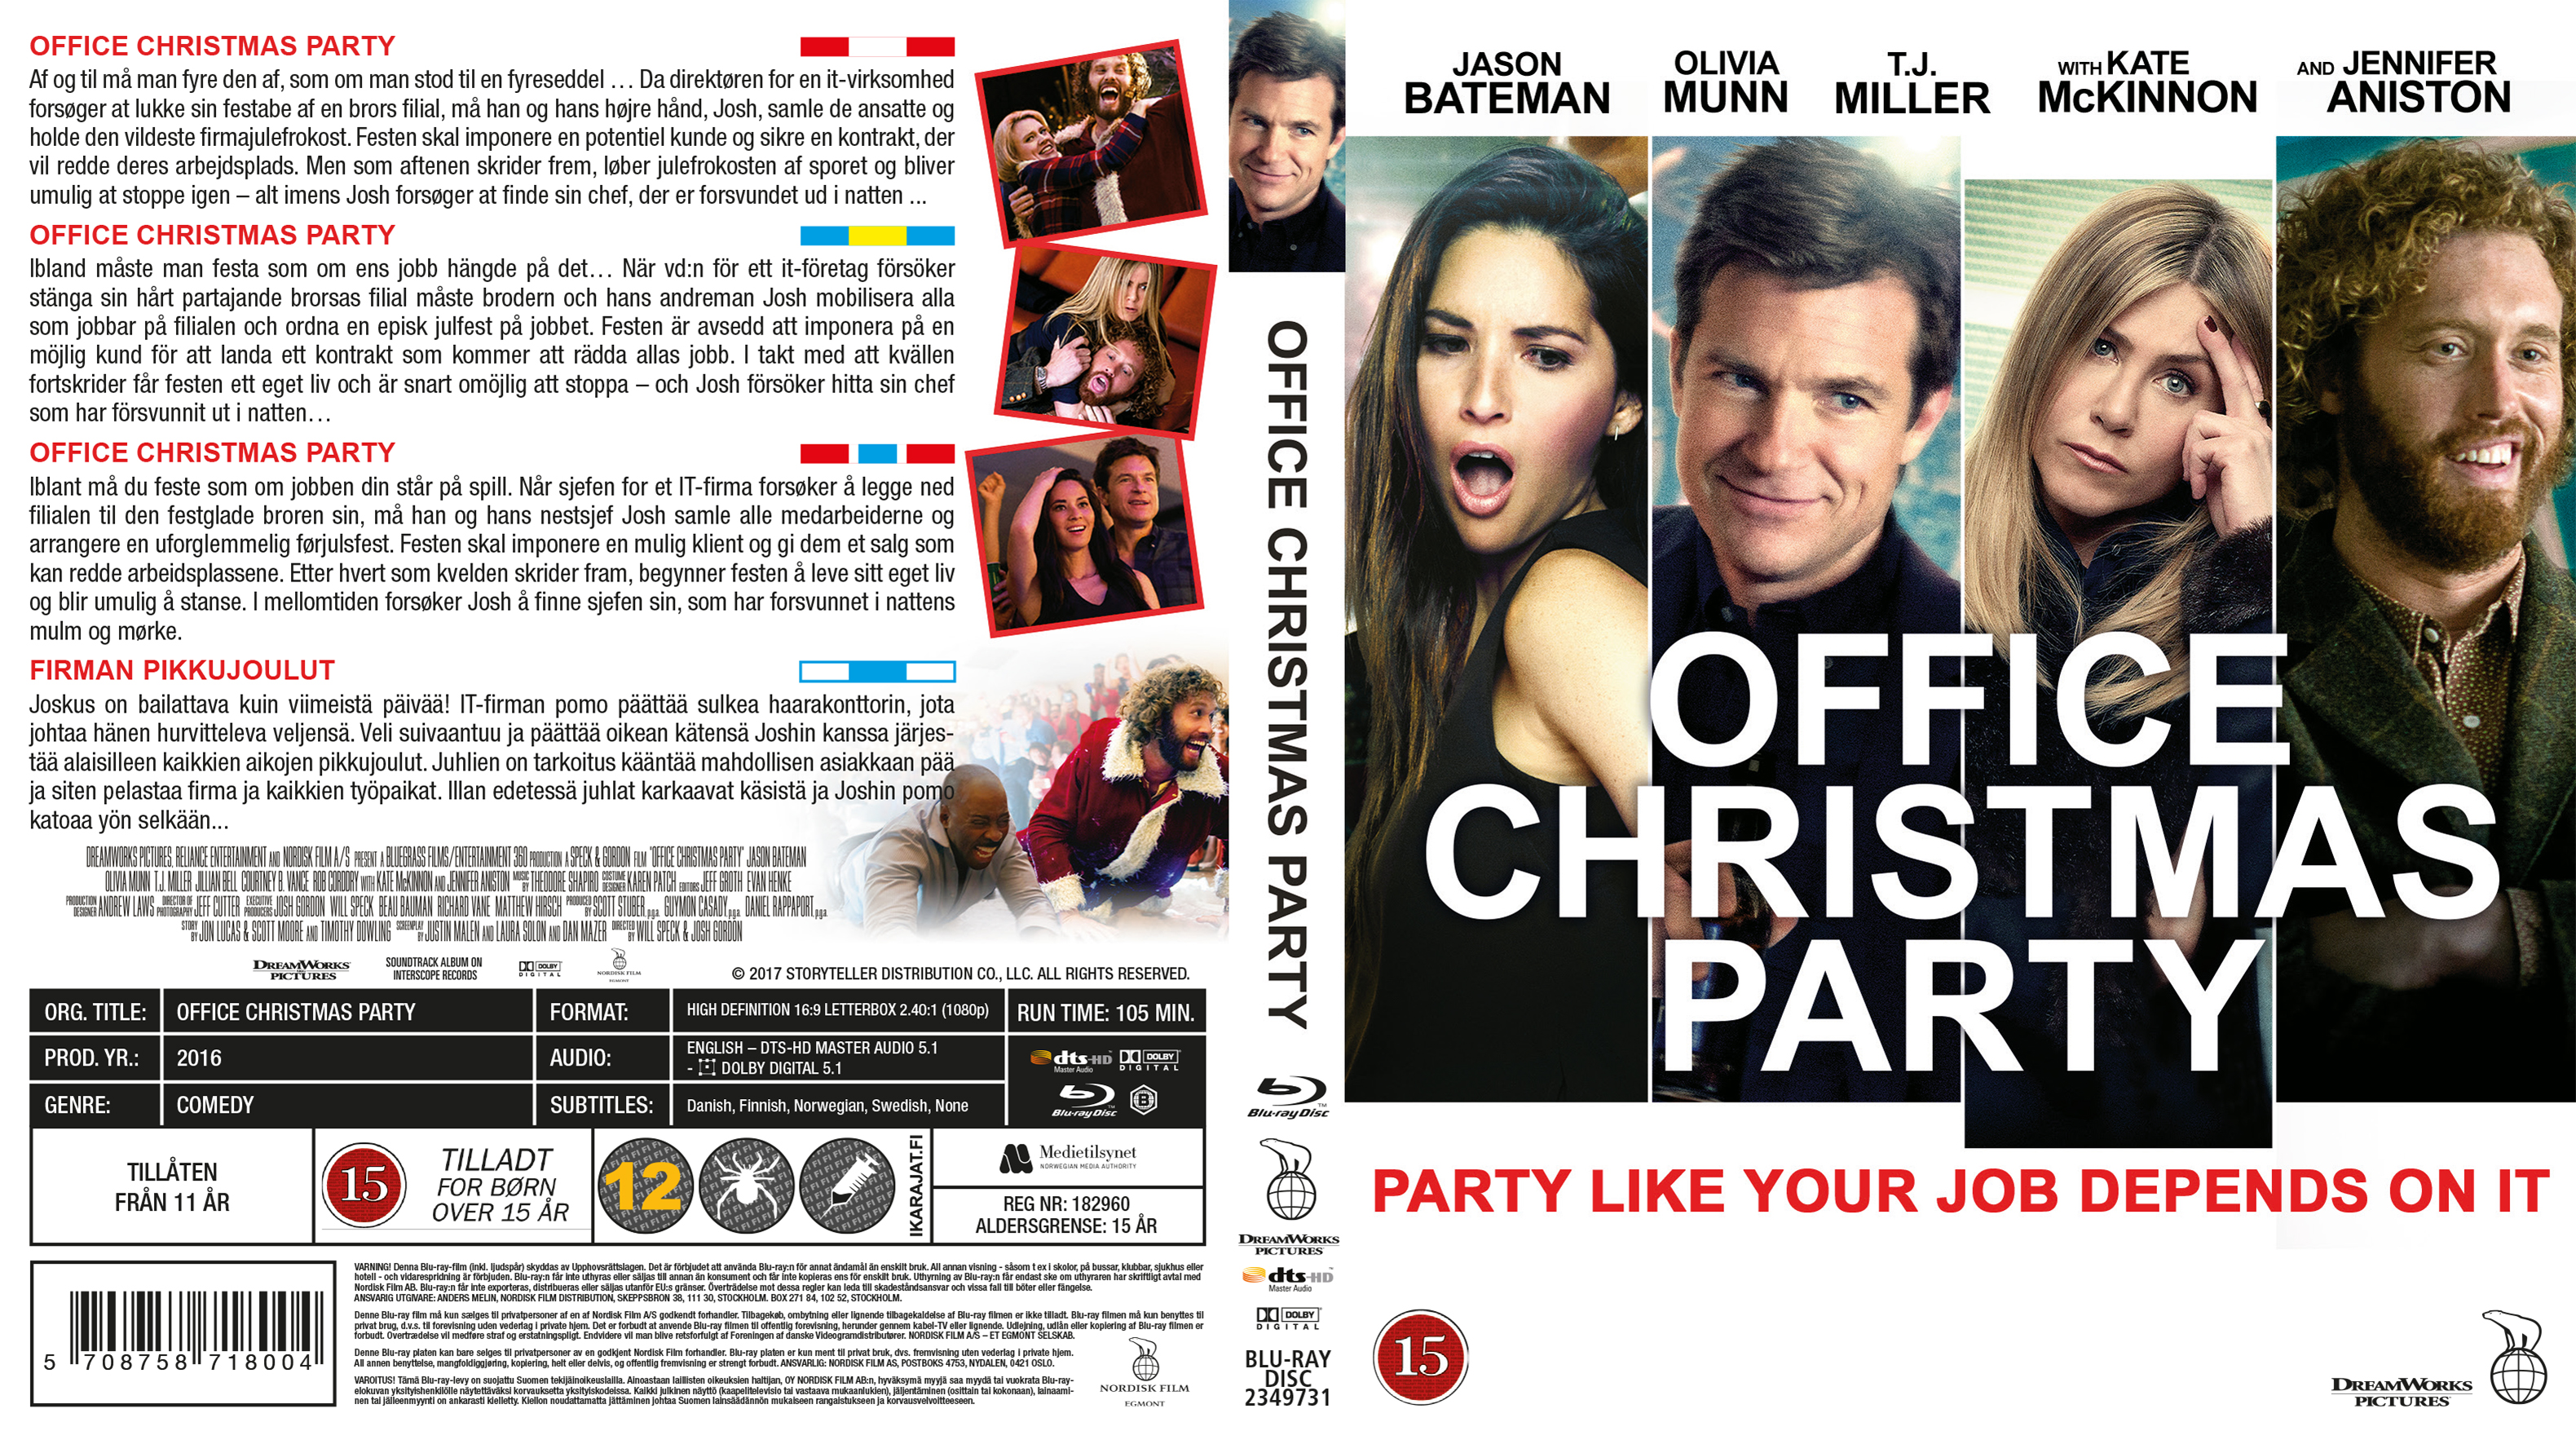 Office christmas party movie poster - irosh.info